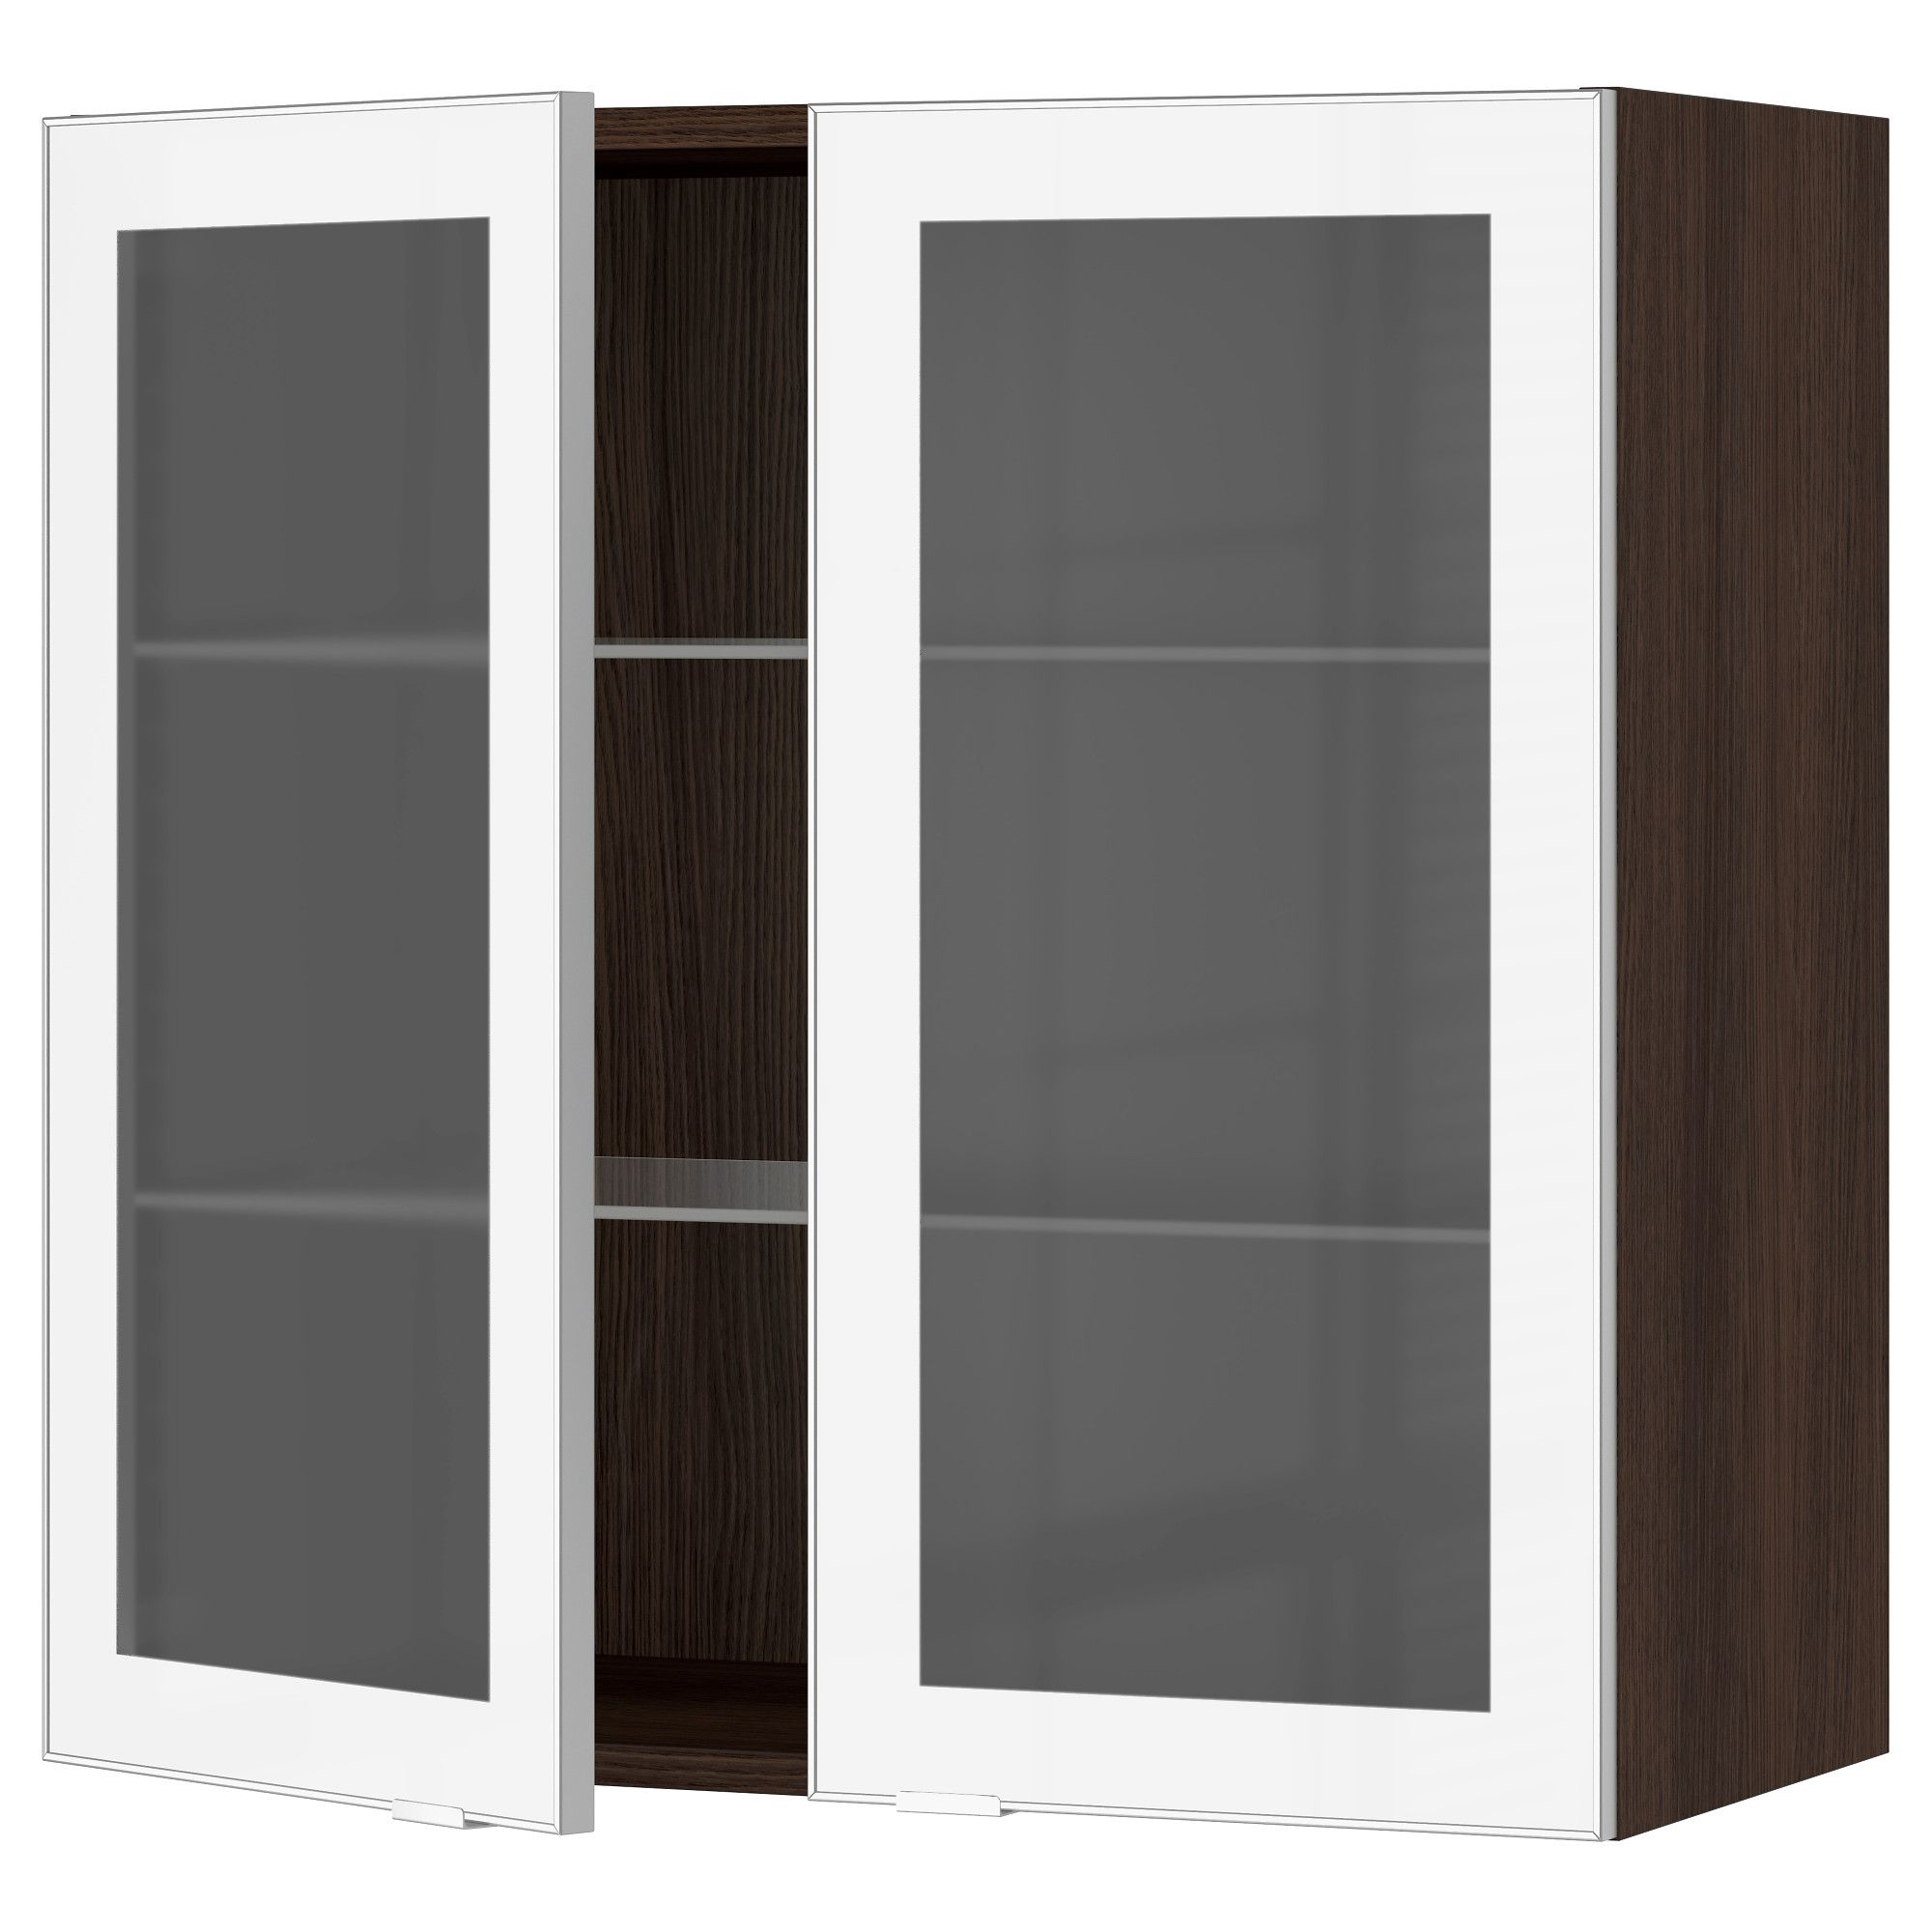 IKEA - SEKTION wood effect brown Wall cabinet with 2 glass ...